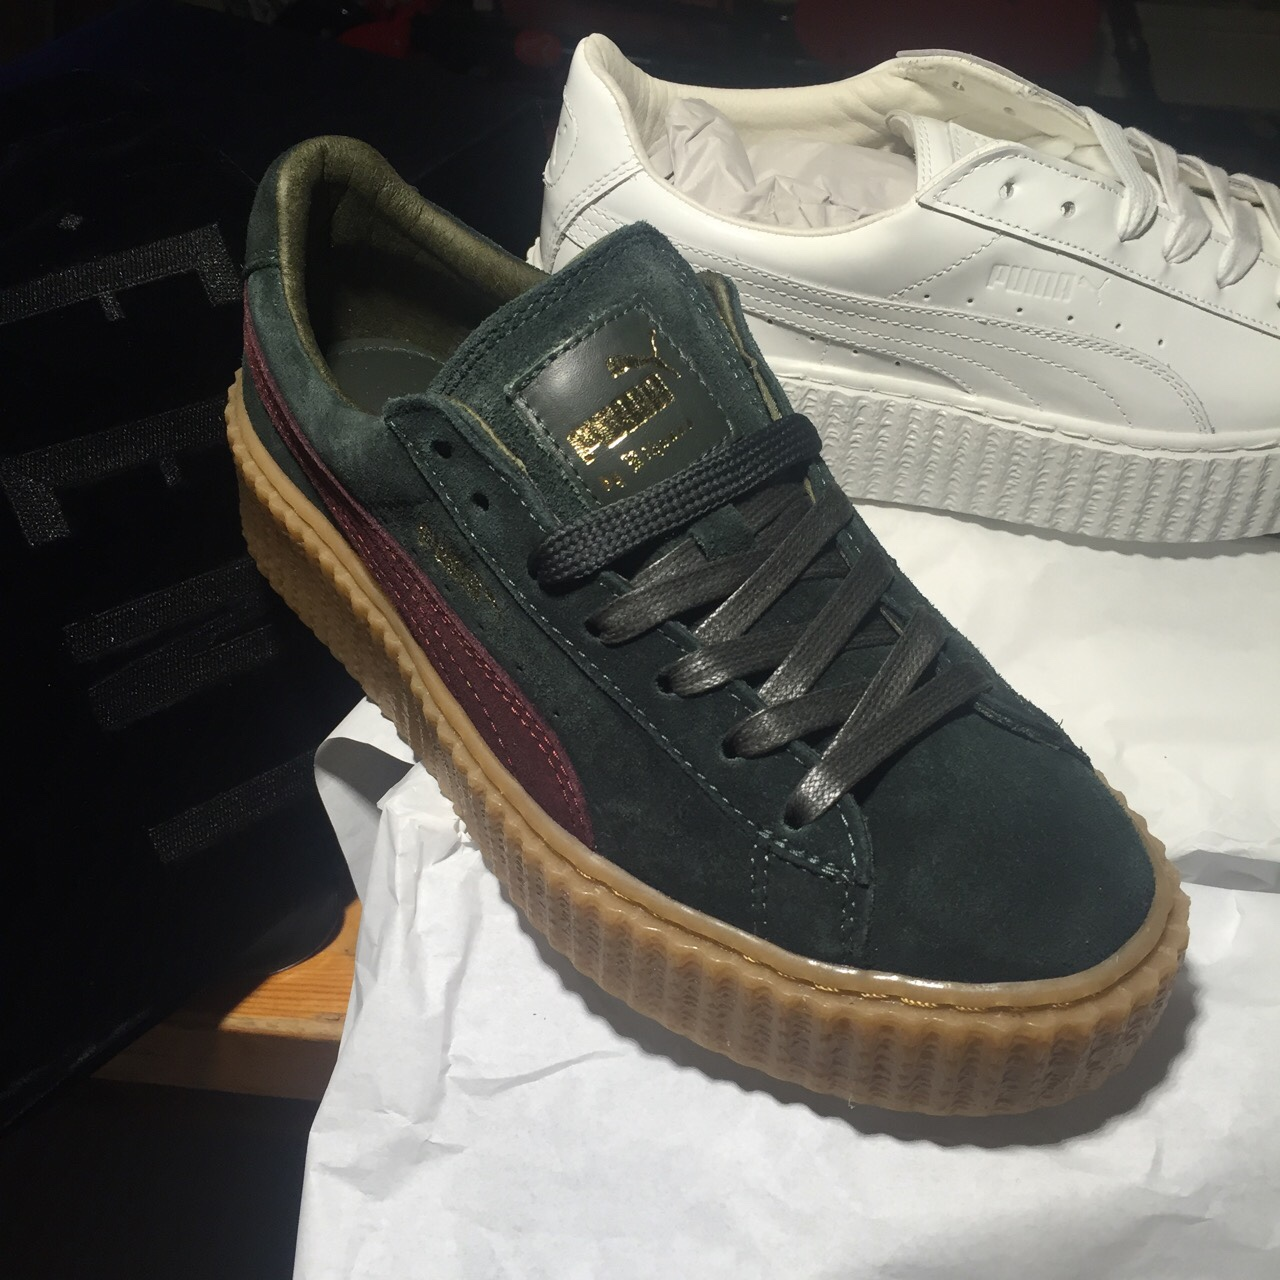 detailed look 5f9cd d99d9 PUMA x Rihanna FENTY Suede Creepers, Green and Red ...